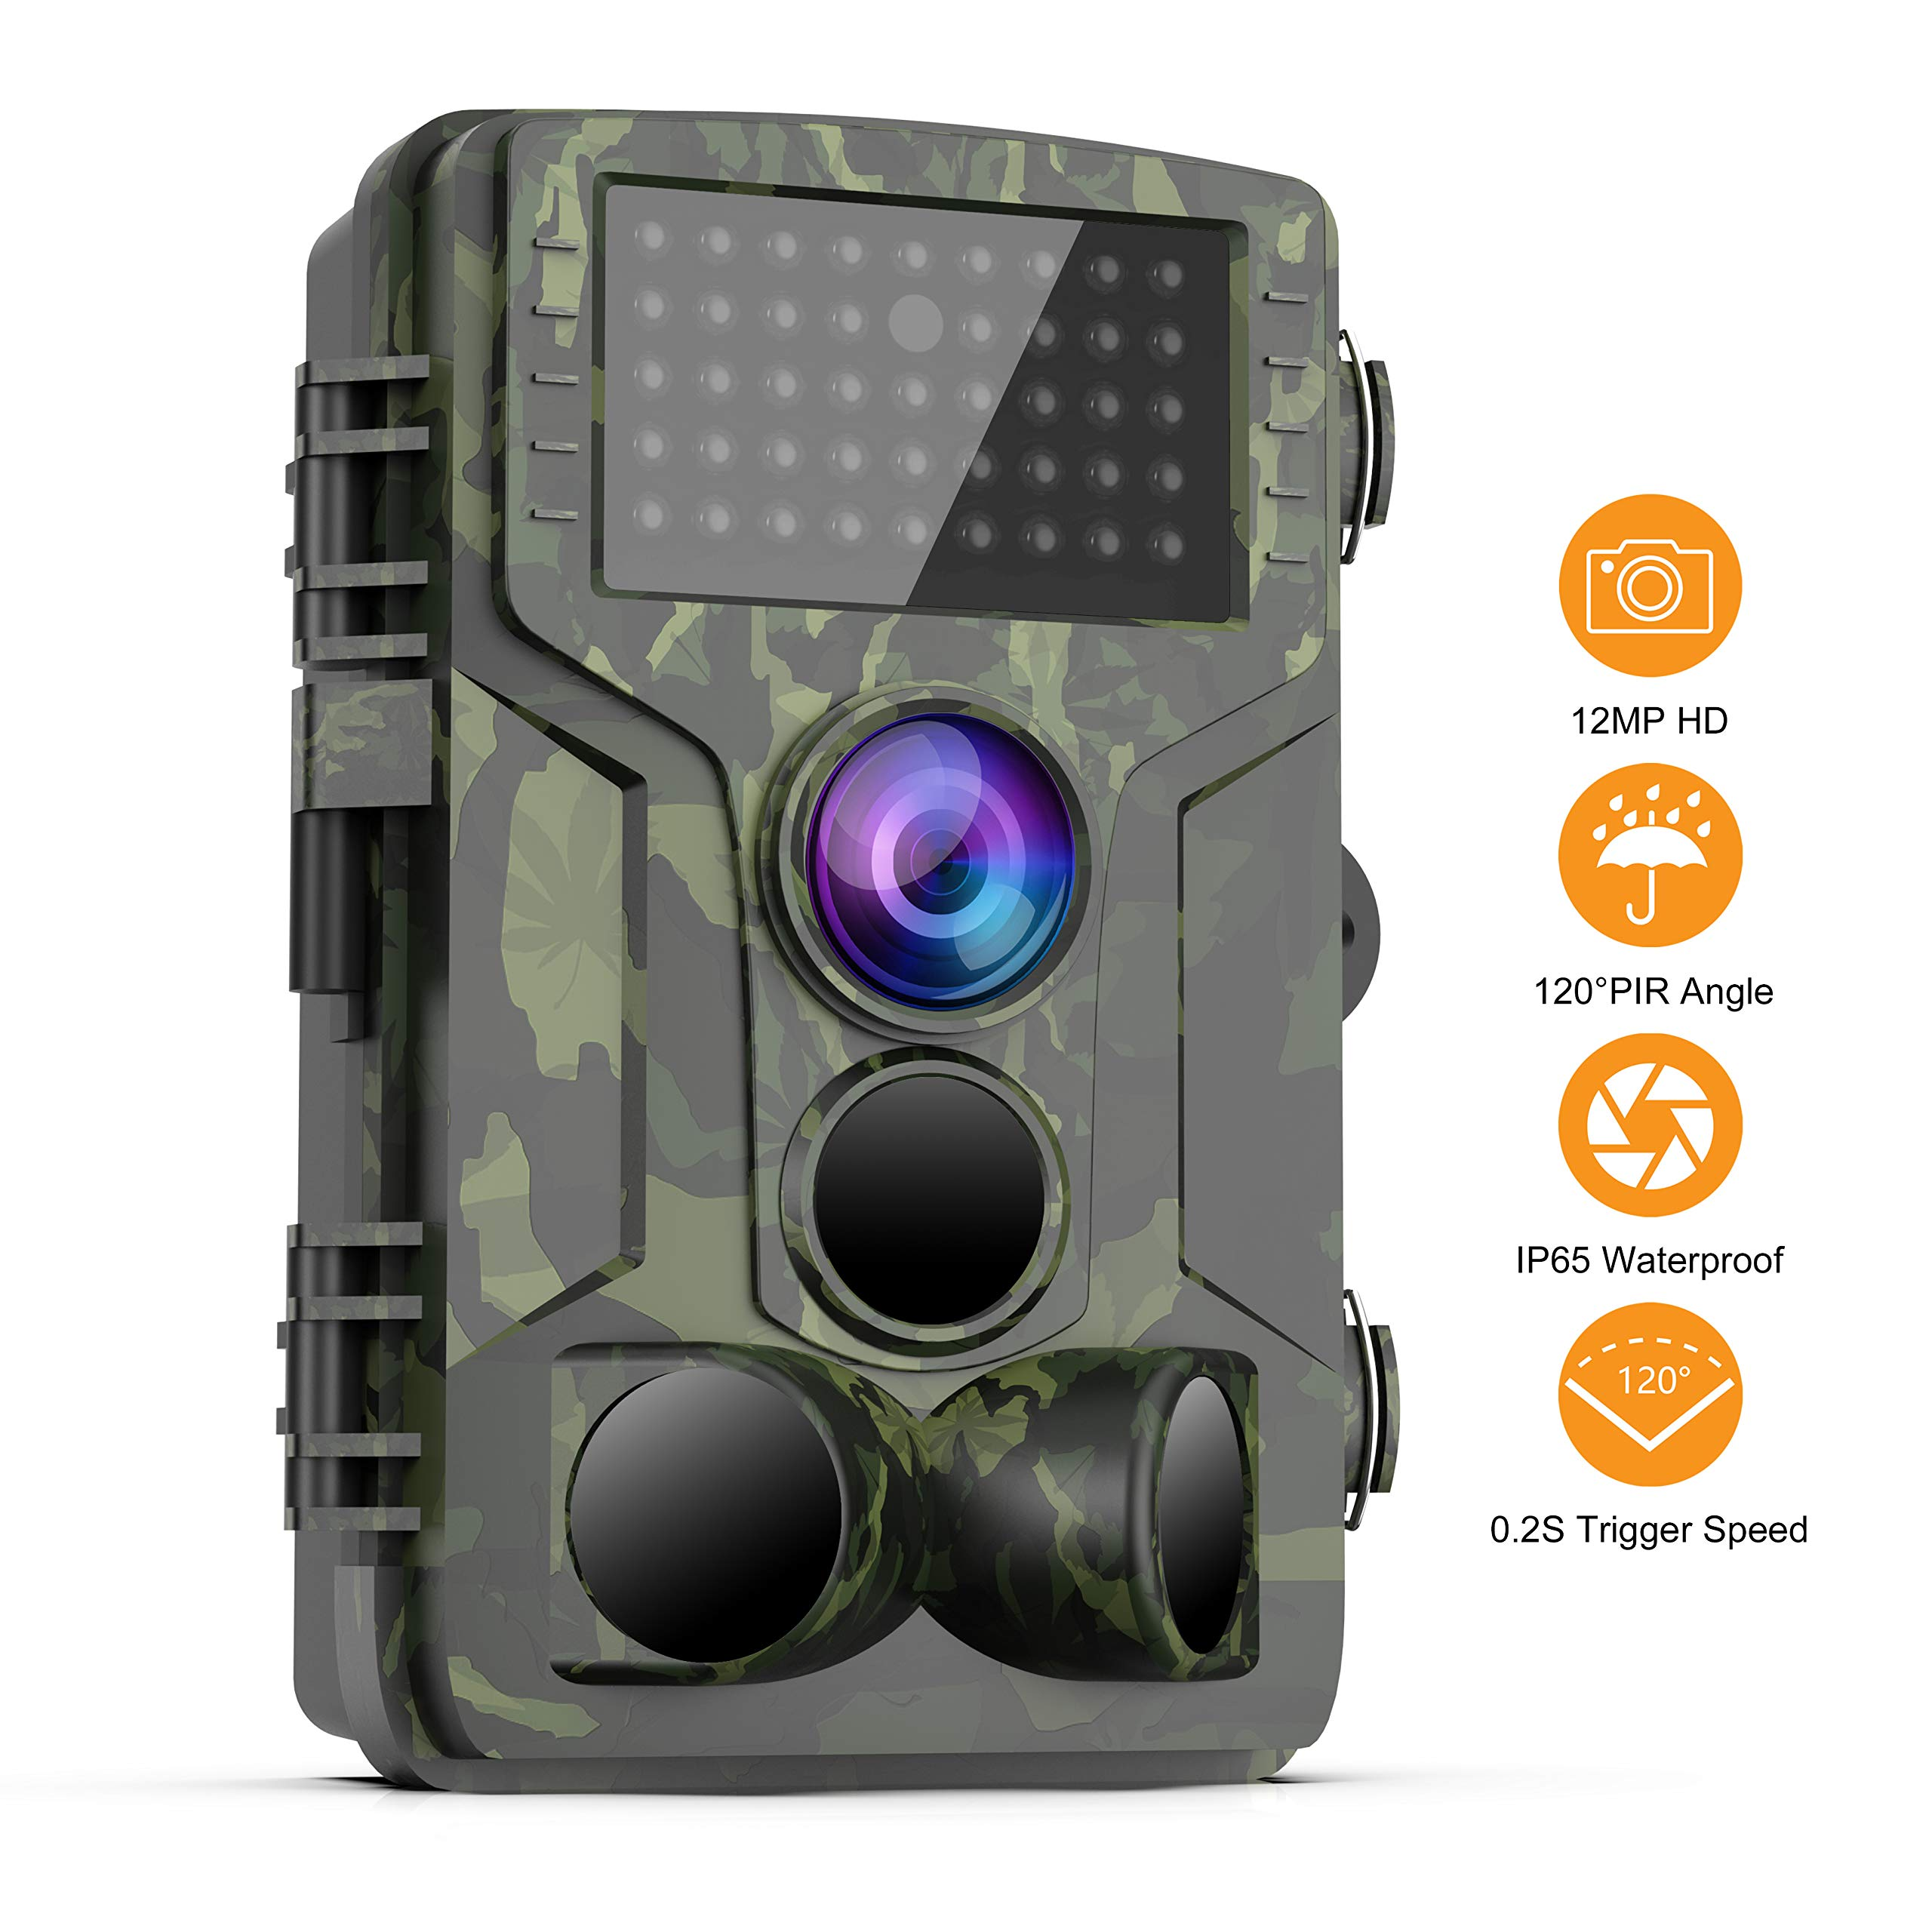 FHDCAM Trail Game Camera - Hunting Scouting Surveillance Cam 1080P Waterproof Wildlife Monitoring with 120° Detection with Fast Trigger Speed Motion Activated and Night Vision